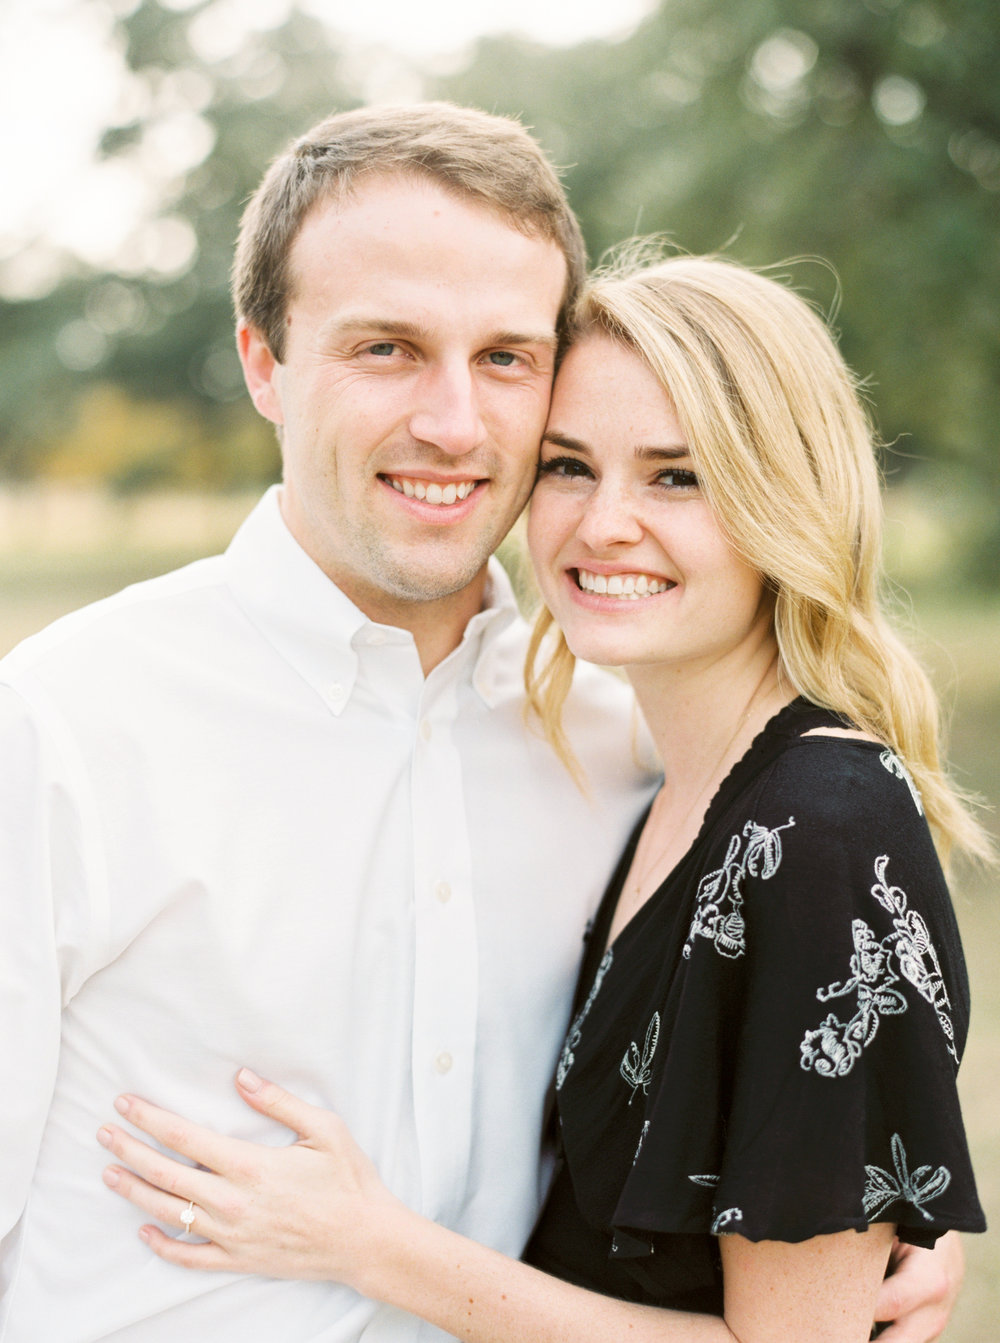 Engagement Session Outfits-78.jpg